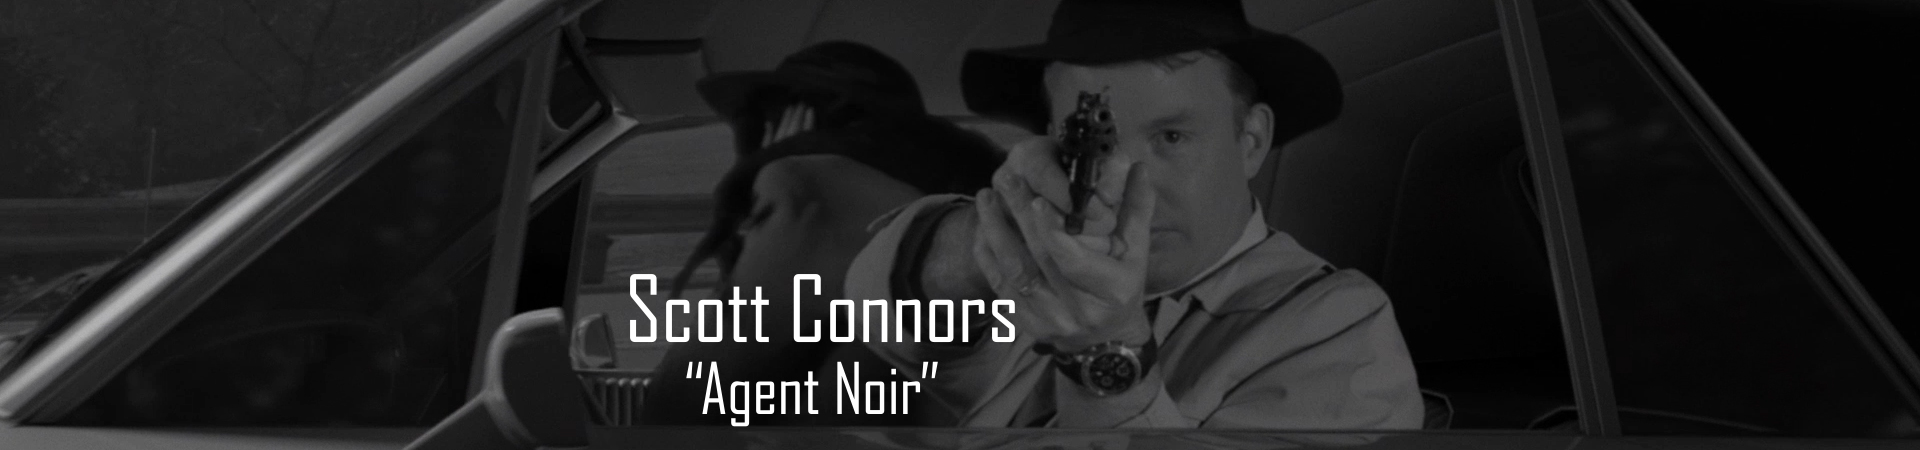 Scott-Connors-Agent-Noir